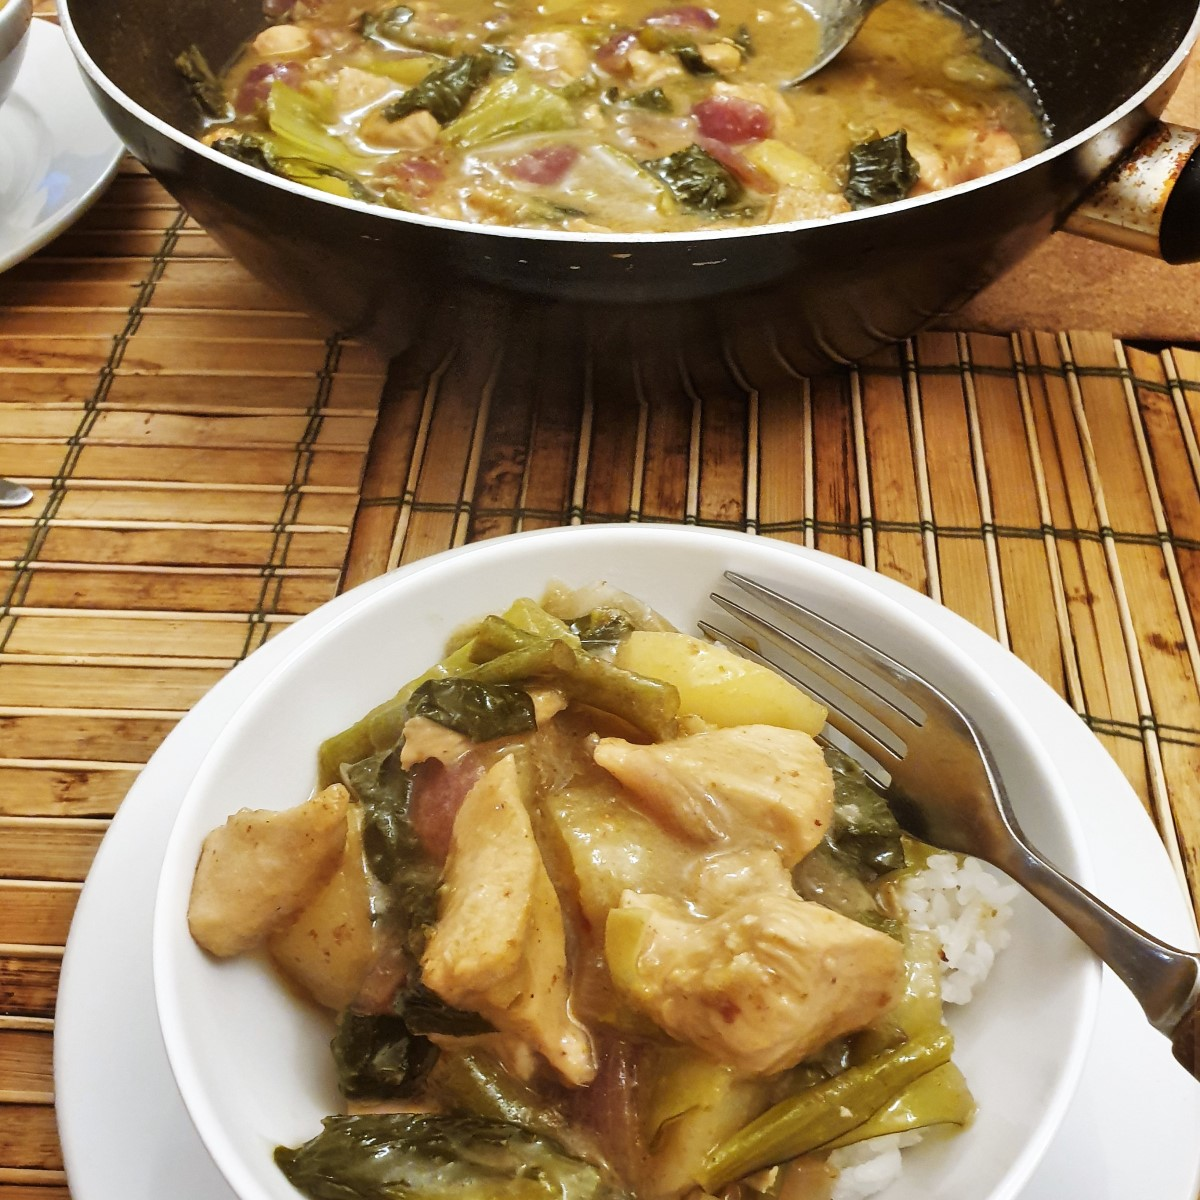 A bowl of thai green chicken curry on the table next to a wok.